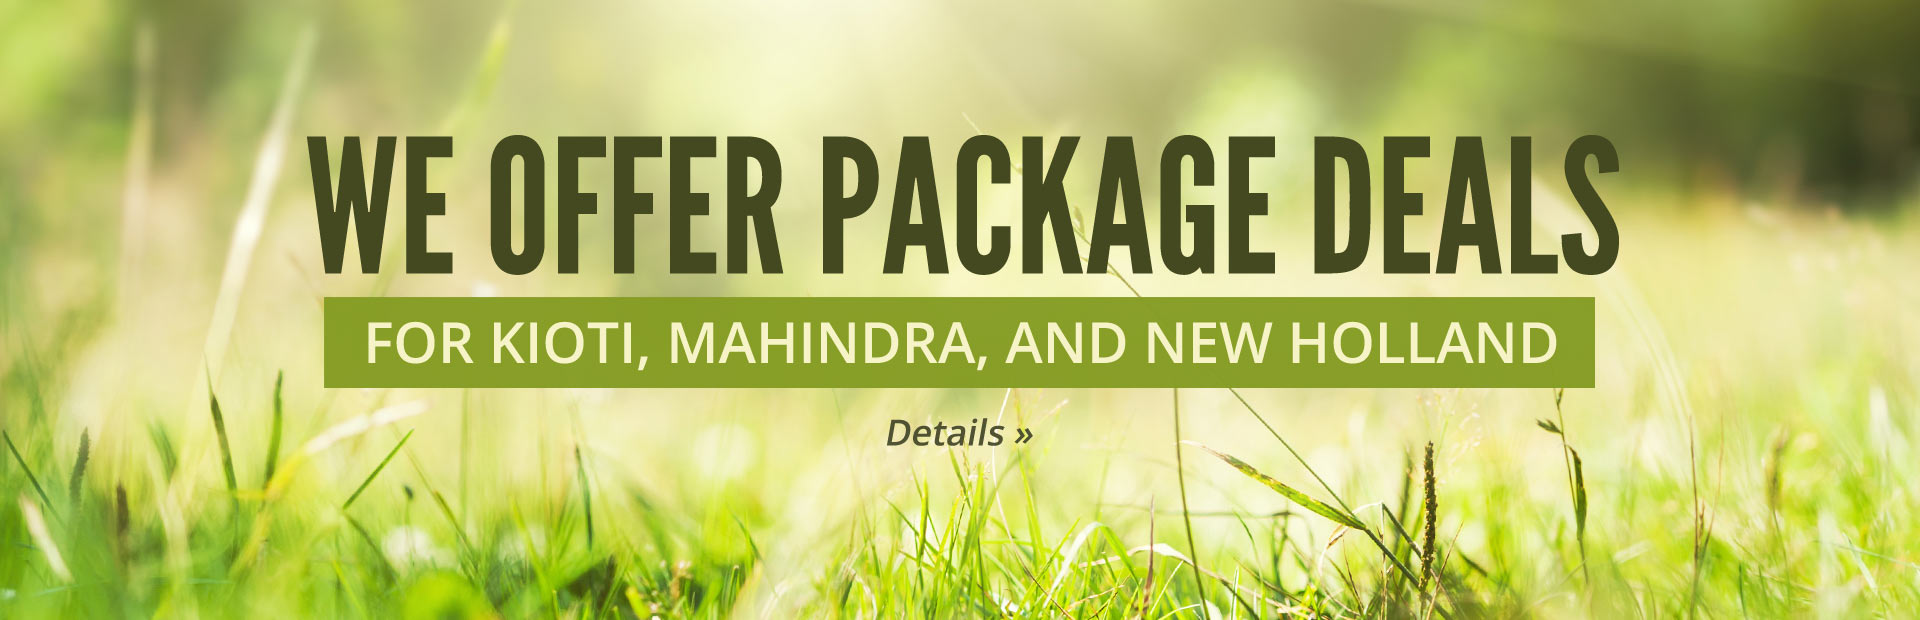 We offer package deals for KIOTI, Mahindra, and New Holland!